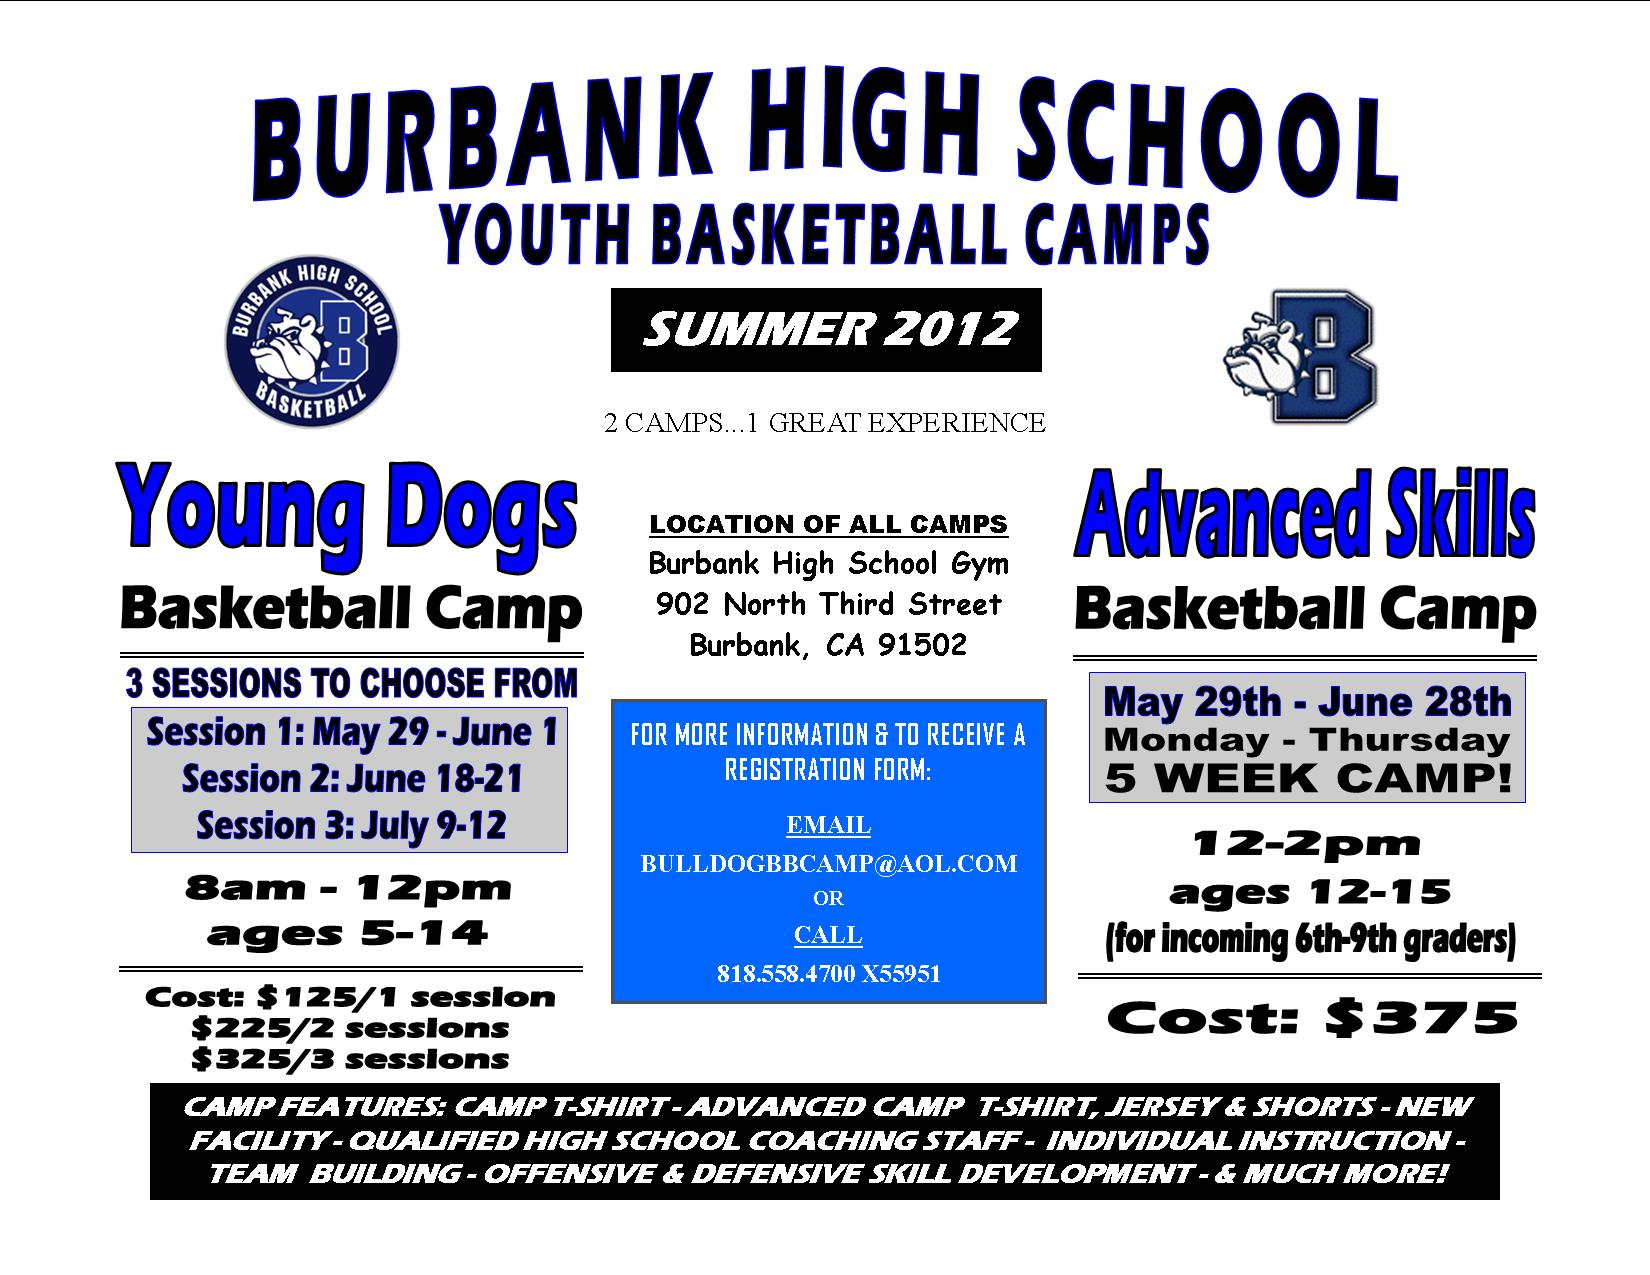 Burbank HS Summer Camp Flier 2012